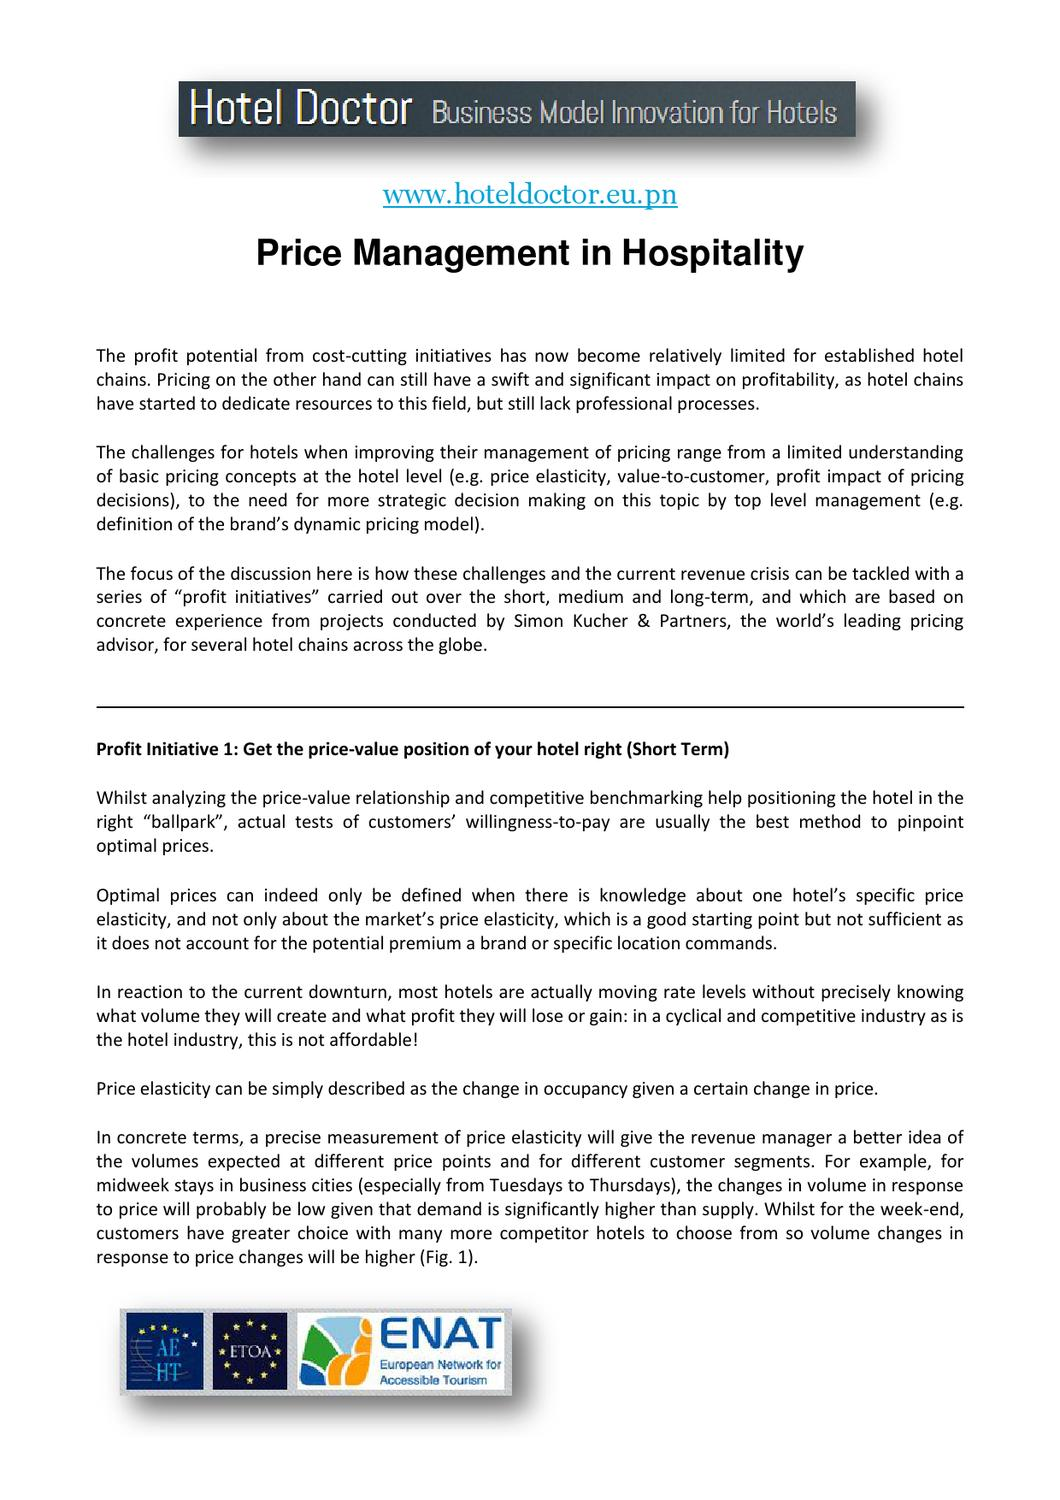 Hotel Price Management - www hoteldoctor eu pn by Daniel